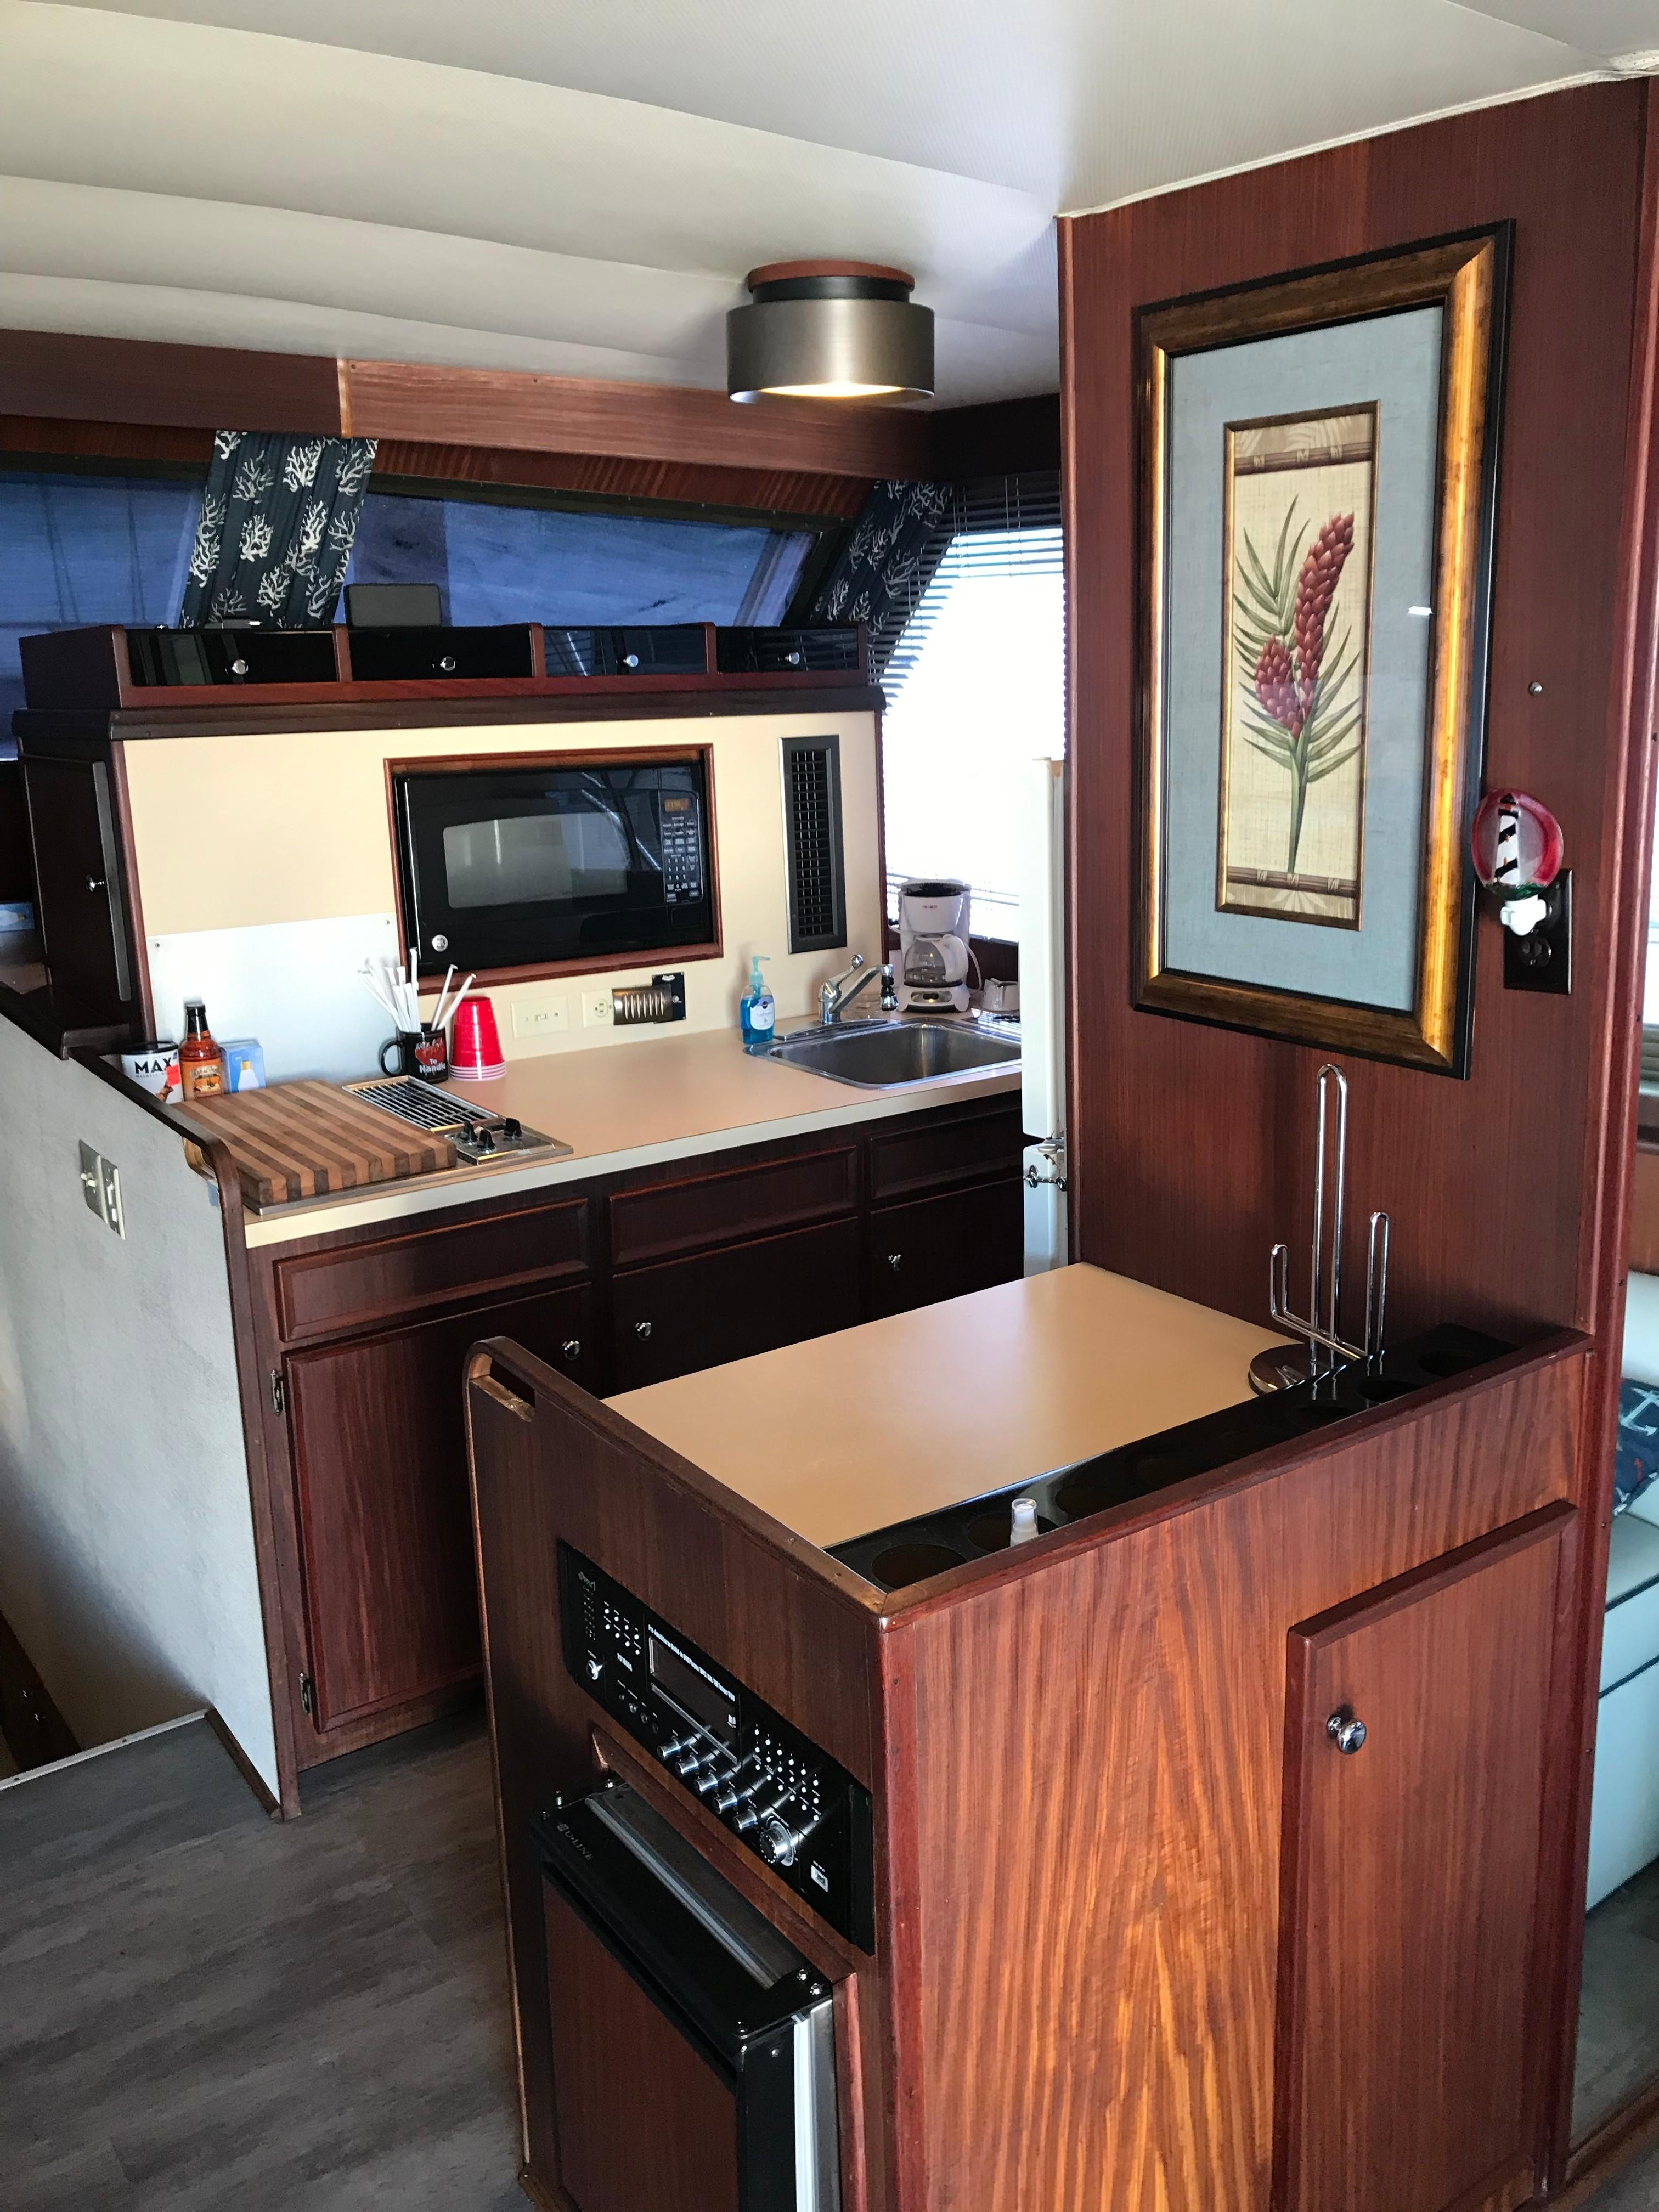 Hatteras Convertible - MUST SEE - Galley/wet bar to starboard